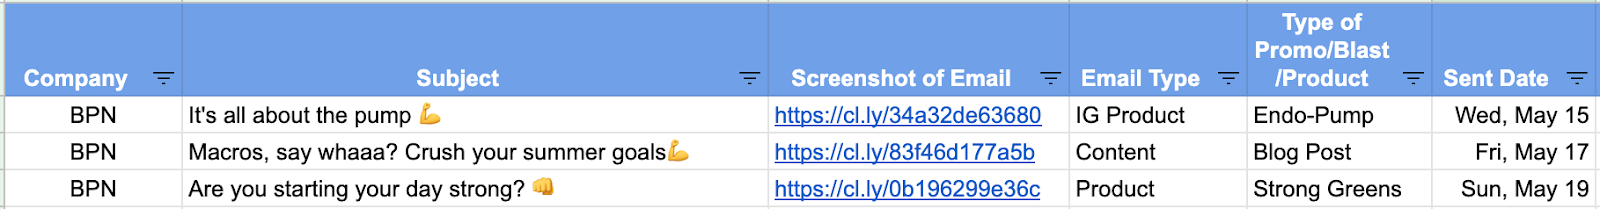 Screenshot of a 3x per week emailing schedule